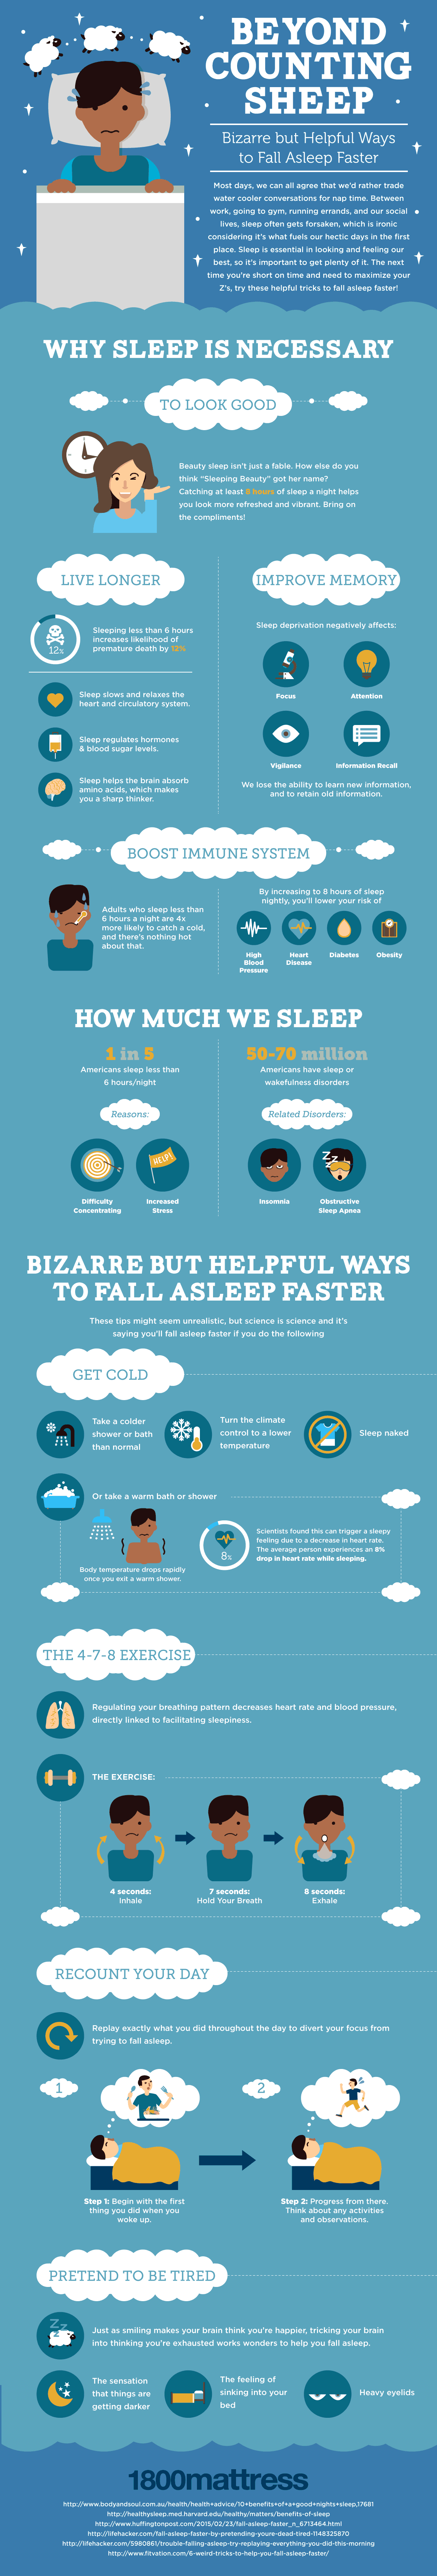 Beyond Counting Sheep: Bizarre Ways to Fall Asleep Faster